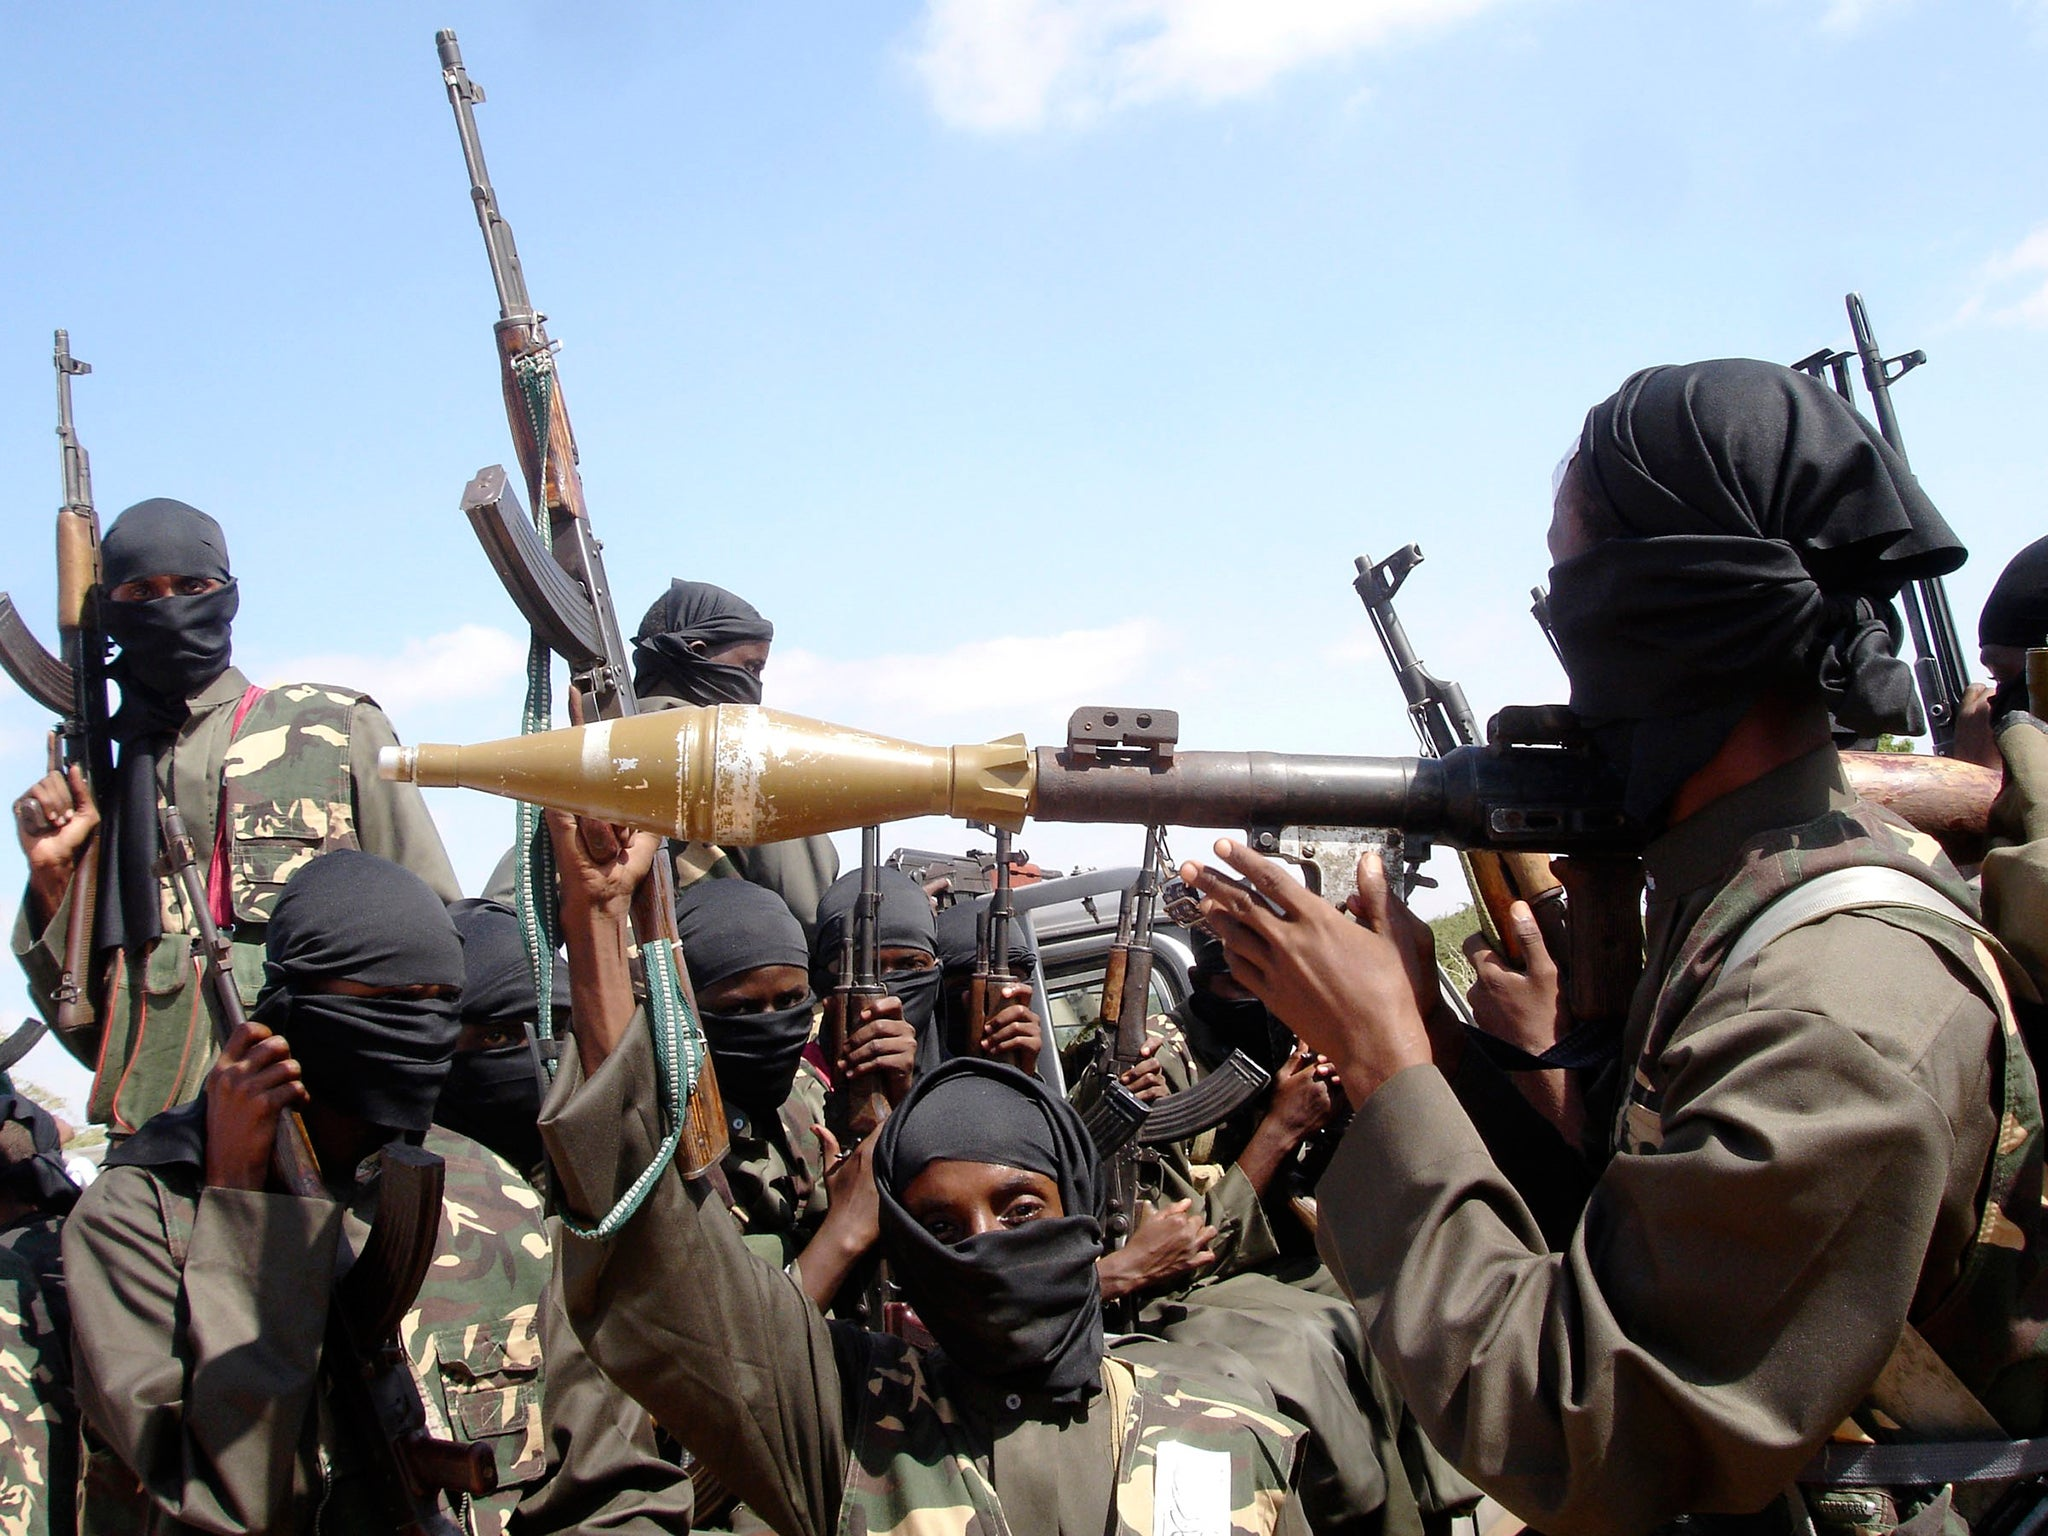 Al-Shabaab: Who are the East African jihadi group and what are their